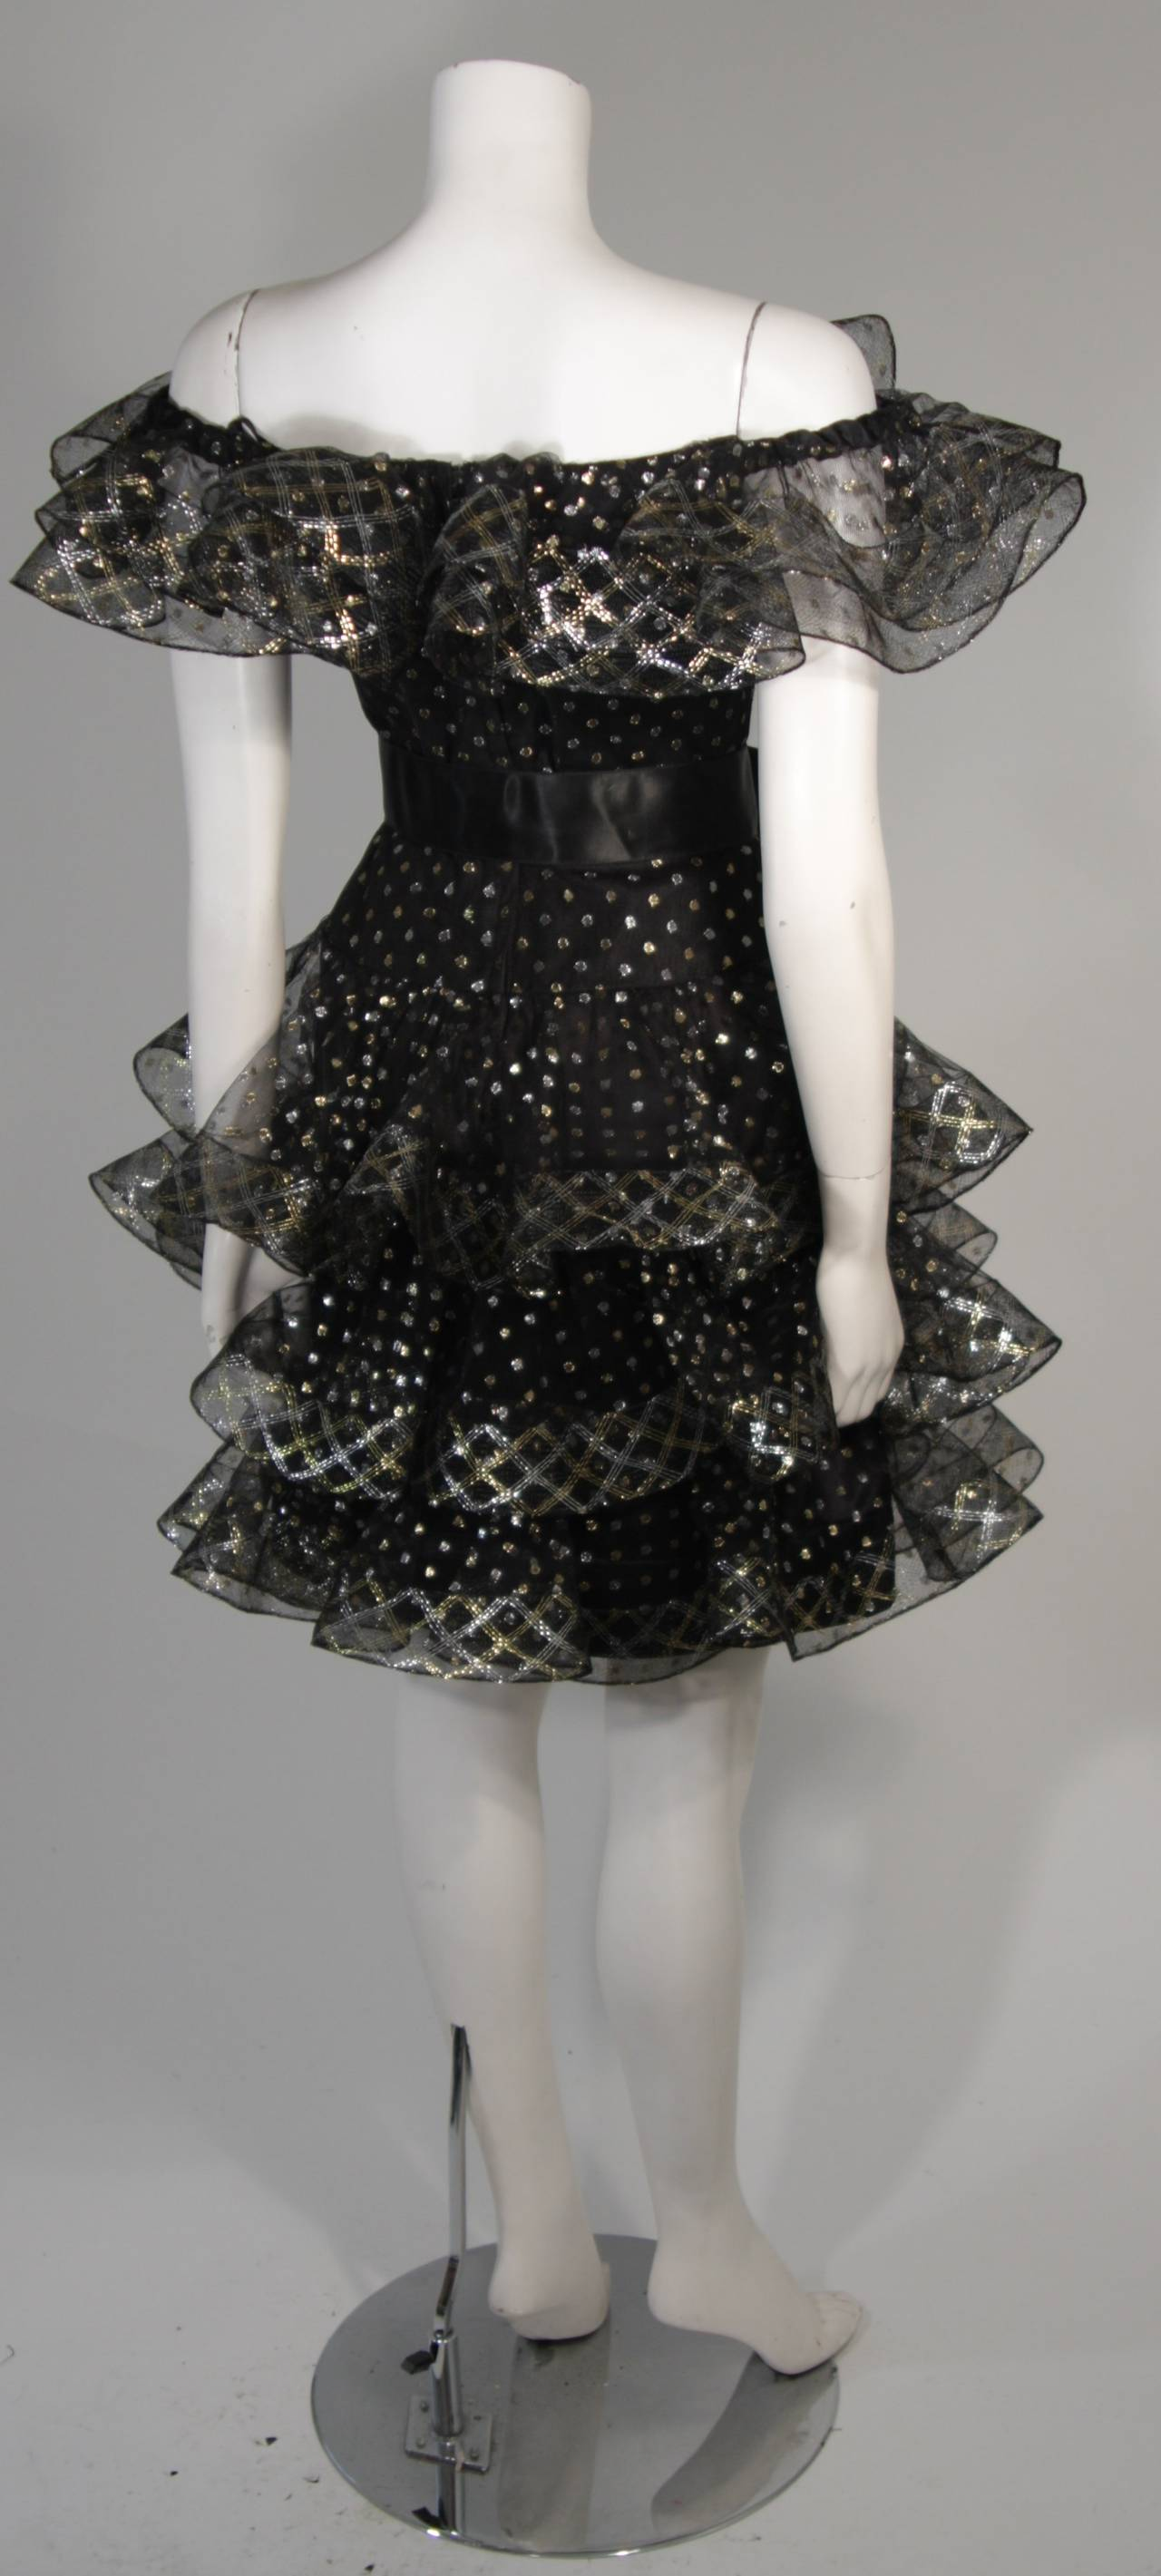 Victor Costa Black with Gold and Silver Metallic Accents Cocktail Dress Size 2 For Sale 4